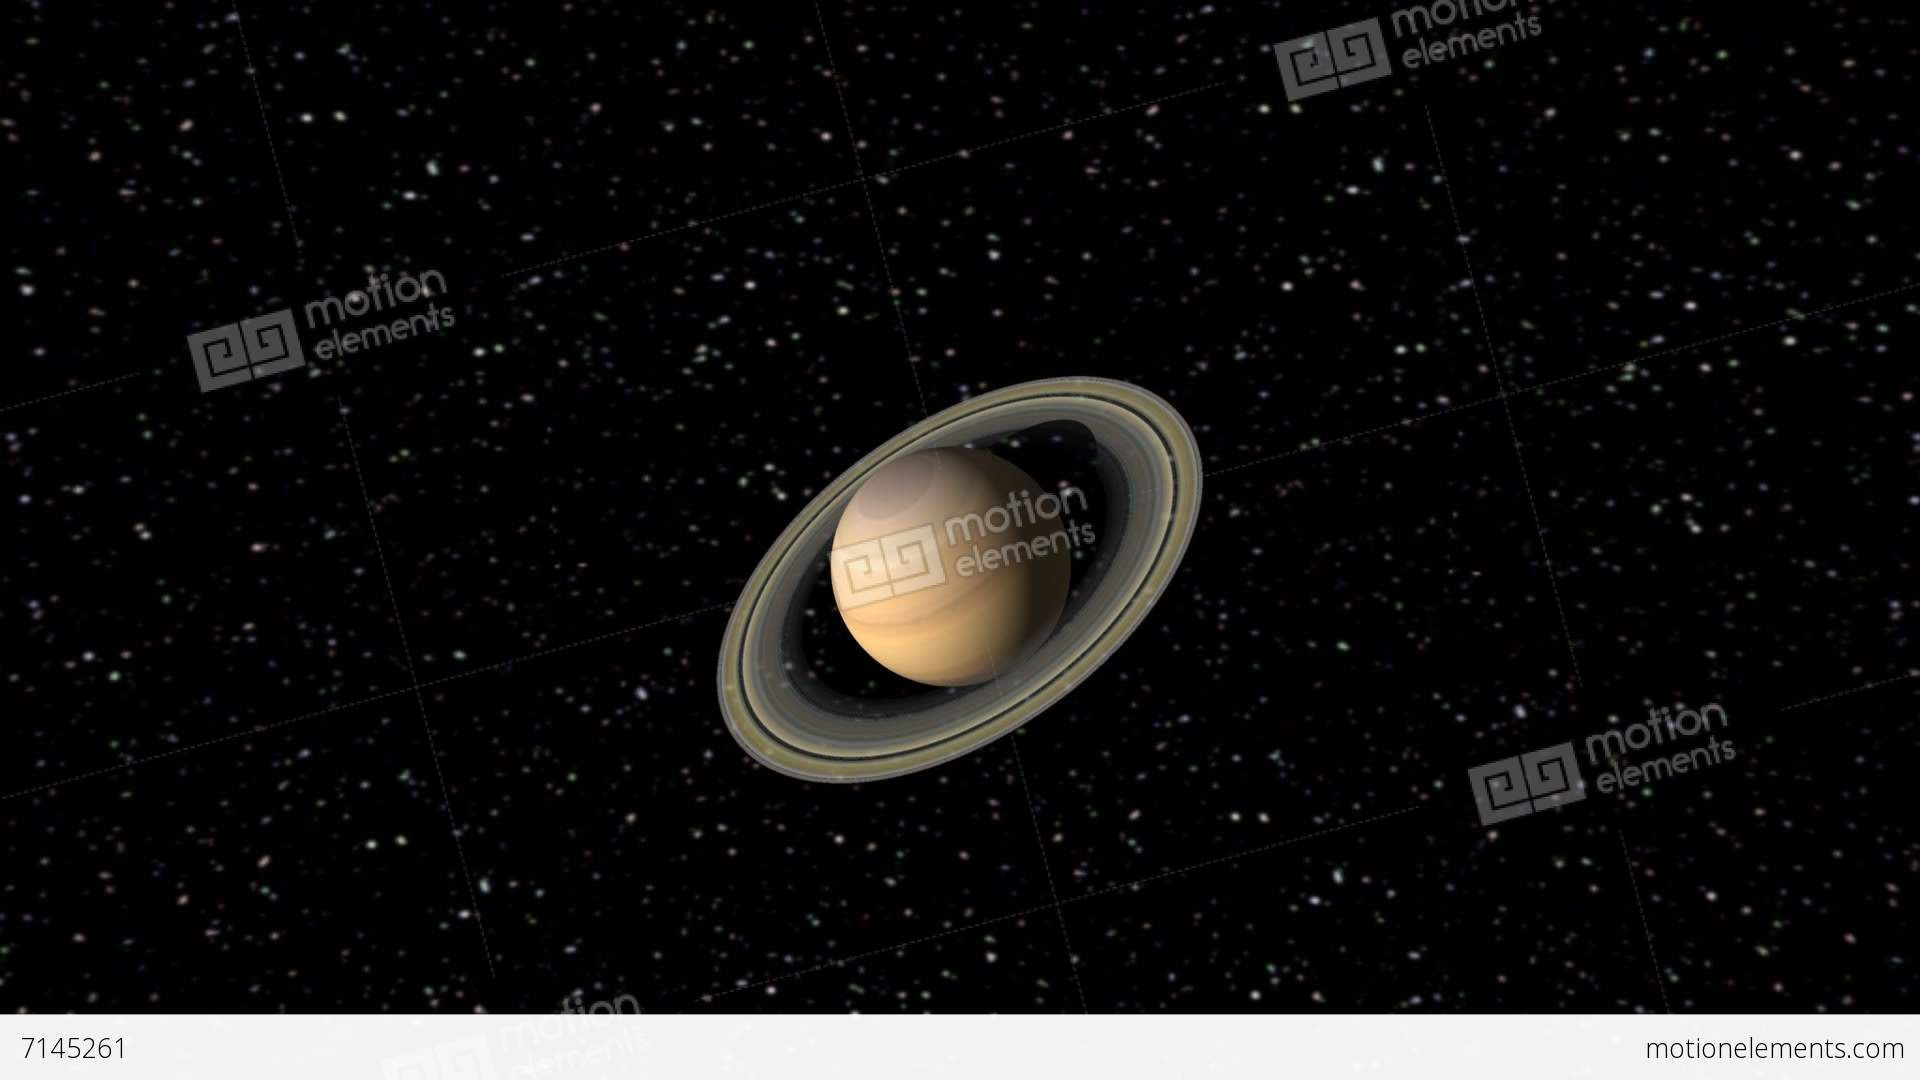 digital images of saturn the planet - photo #17